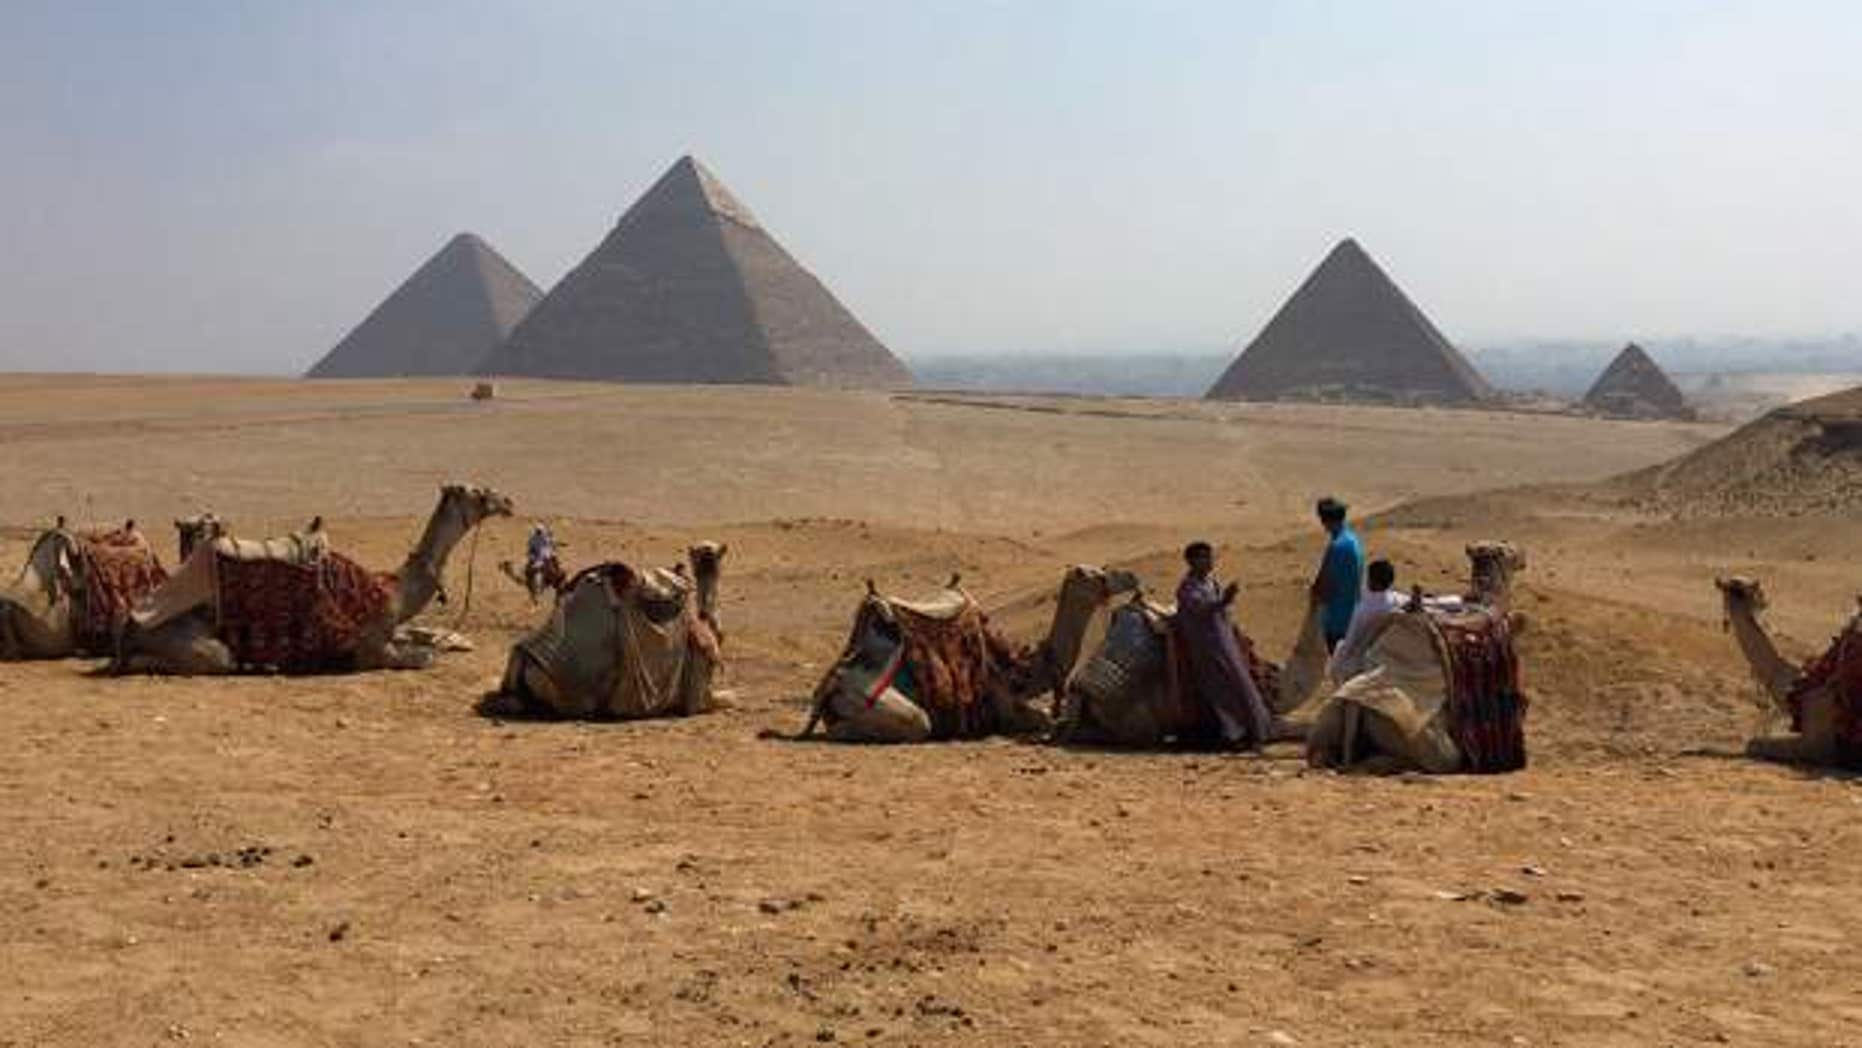 Camels rest between rides with their owners against the backdrop of the pyramids in Giza, Egypt. With Egypt's once-thriving tourism industry in decline, visitors face smaller crowds-- but eager tour guides and pushier souvenir vendors.